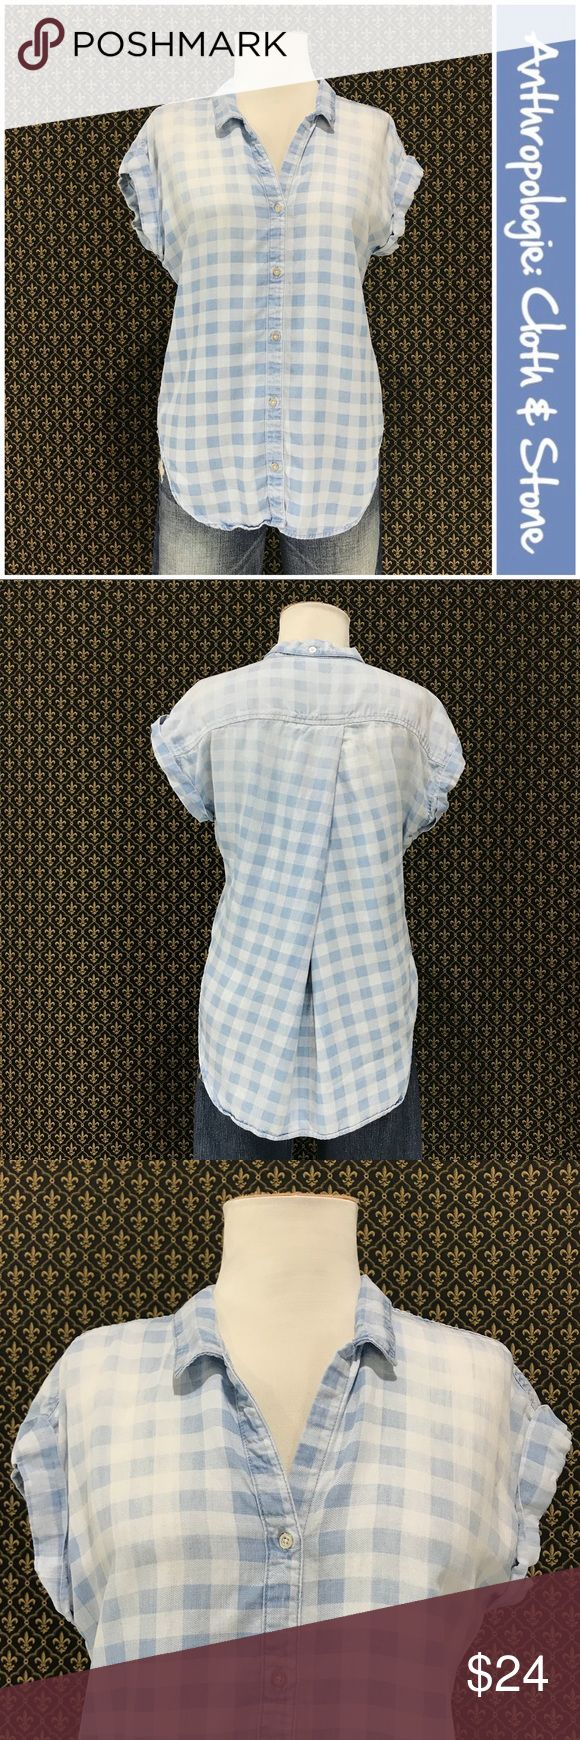 """Anthro """"Celestine Button Chambray Shirt"""" by Cloth By Cloth & Stone.  Great condition. 100% tencel, button front.  Shirttail like rounded hem with a slight high-low.  Meaurements are approximate and taken with the garment laid flat and unstretched:  20"""" armpit to armpit.  Hem goes as high as 20"""" at sides to 30"""" in middle back. 26"""" length center front.     ☘️Prices are firm and quite reasonable 🍀Smoke Free Home 🍀Bundles Welcome but please keep under 10 items (5lbs) 🍀Kitty household 🚫No…"""